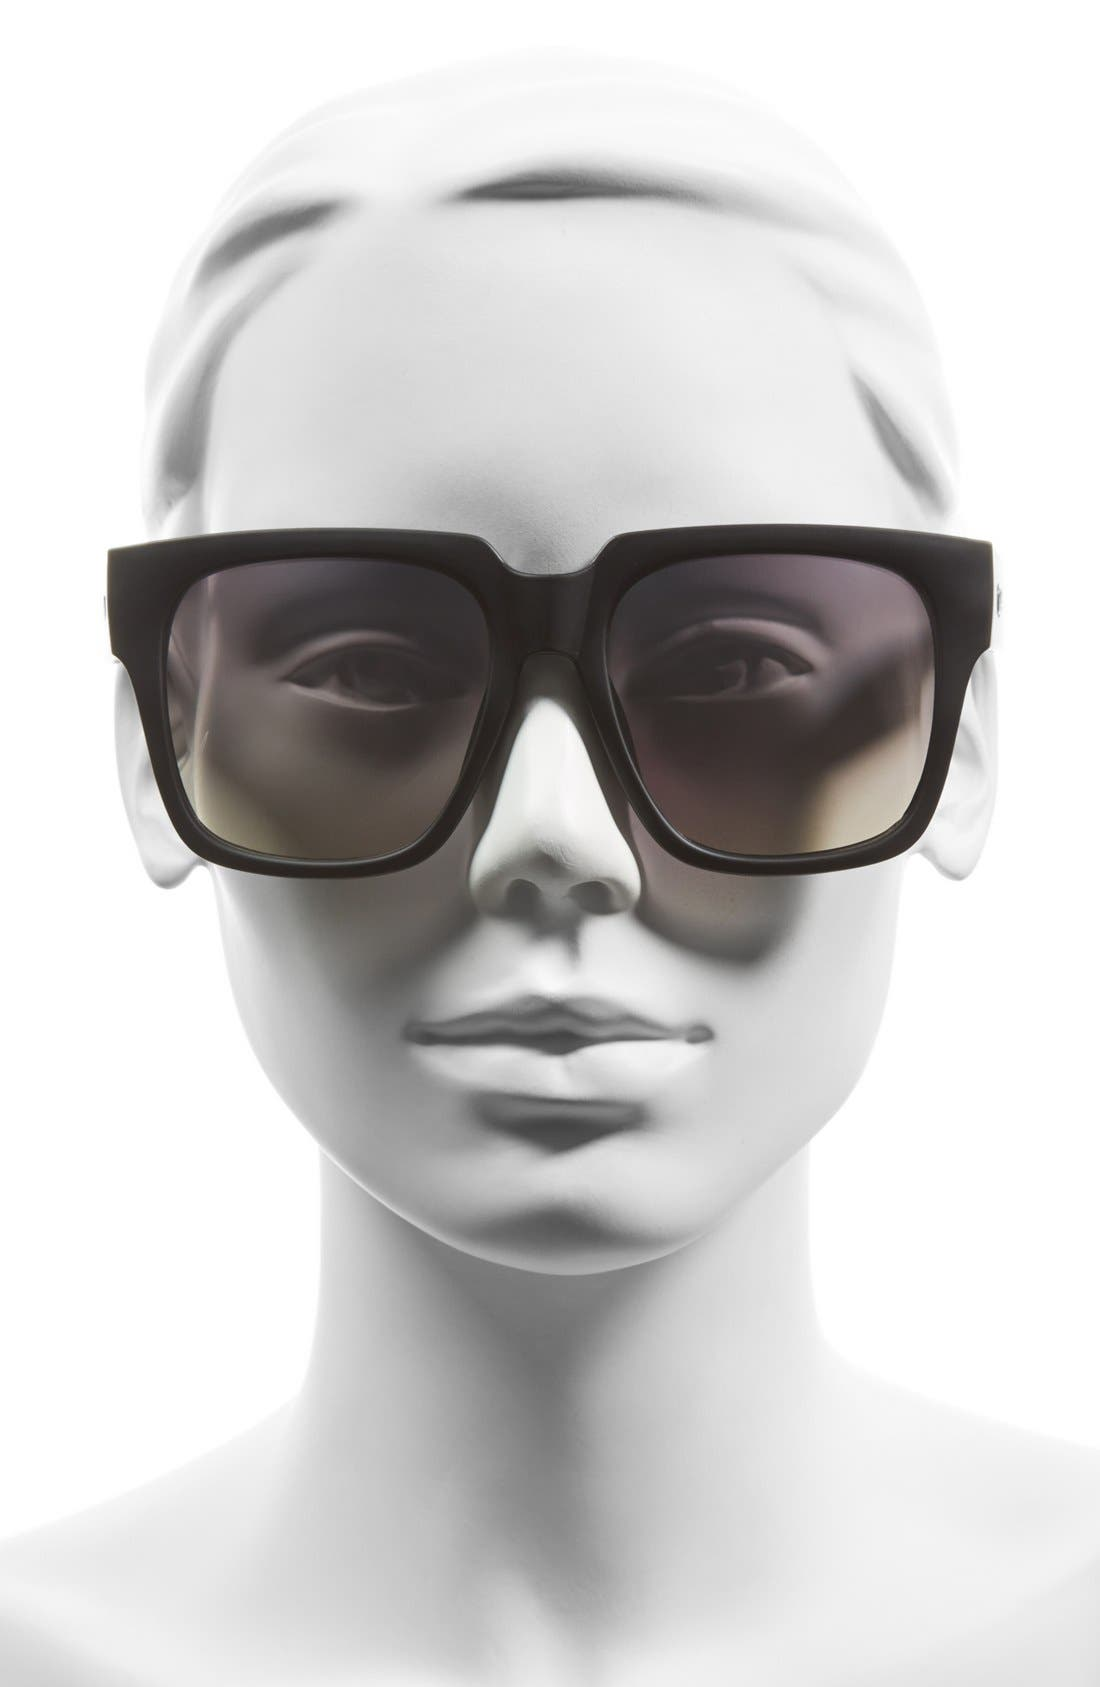 'On the Prowl' 55mm Square Sunglasses,                             Alternate thumbnail 5, color,